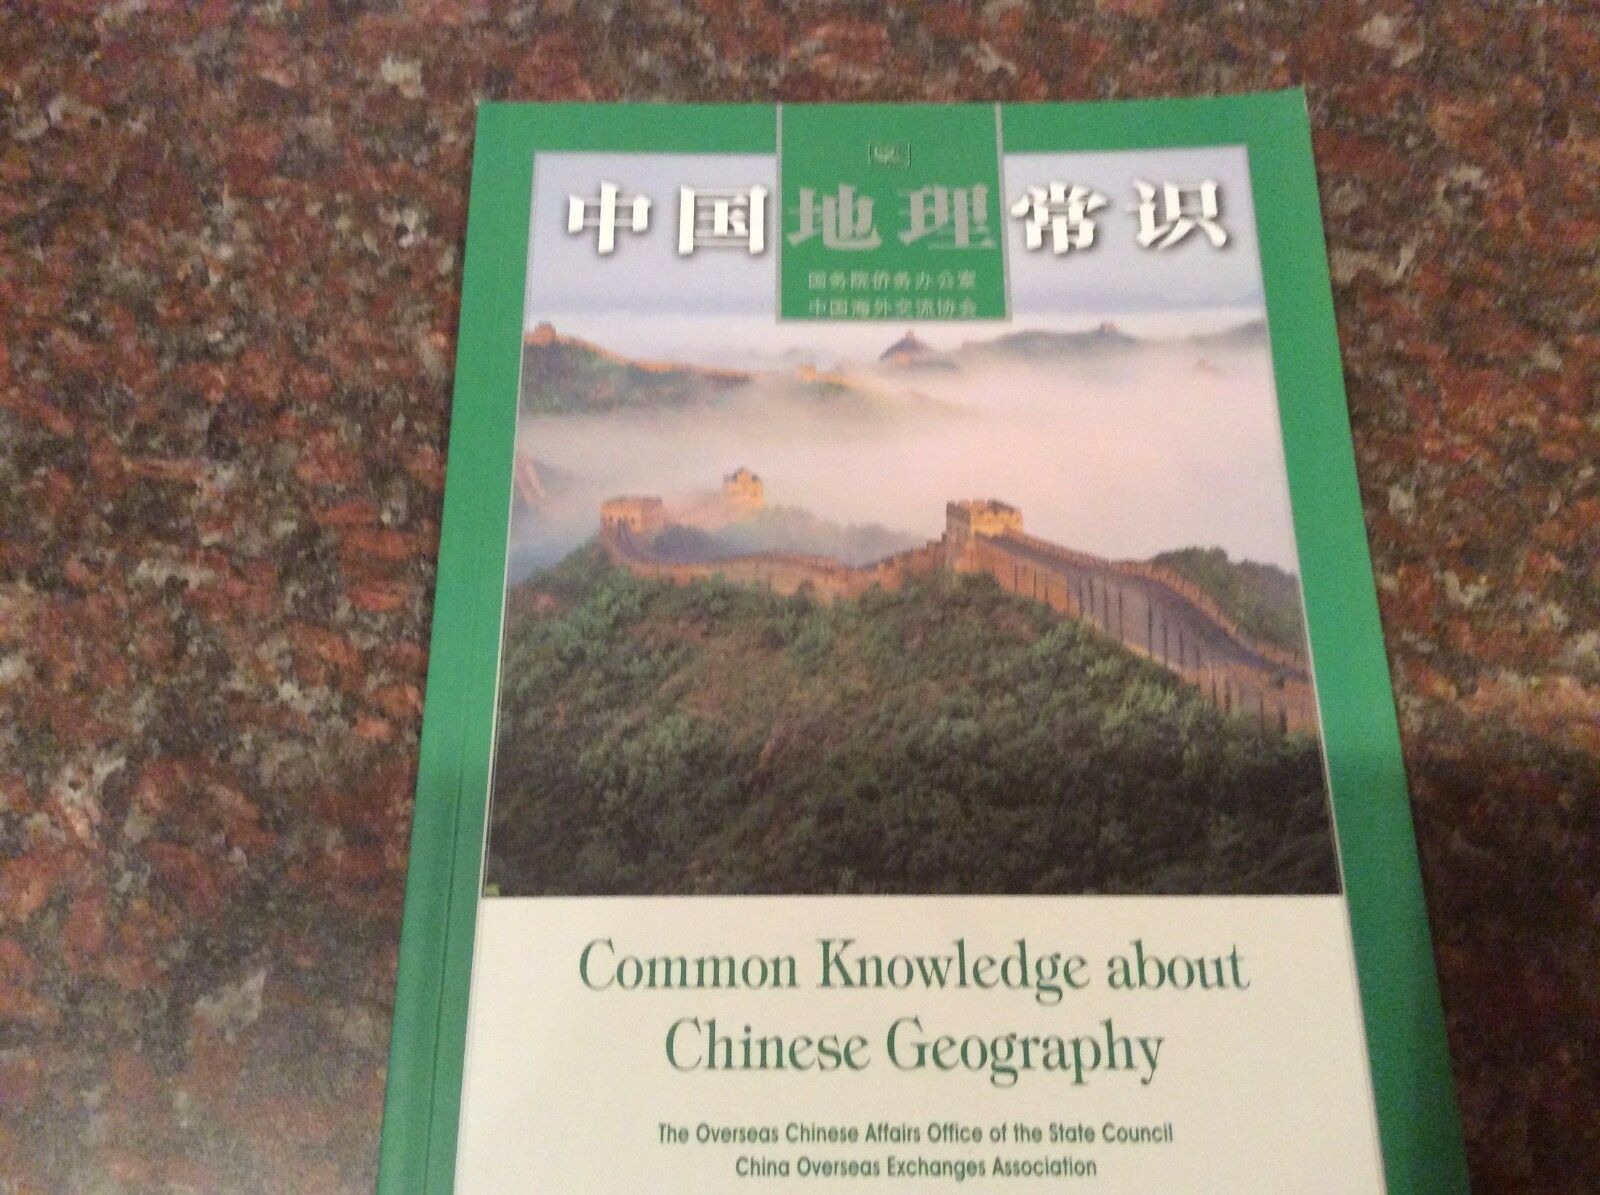 Chinese Geography Common Knowledge About Chinese Geography By Overseas Chinese Affairs Office Staff 2004 Hardcover